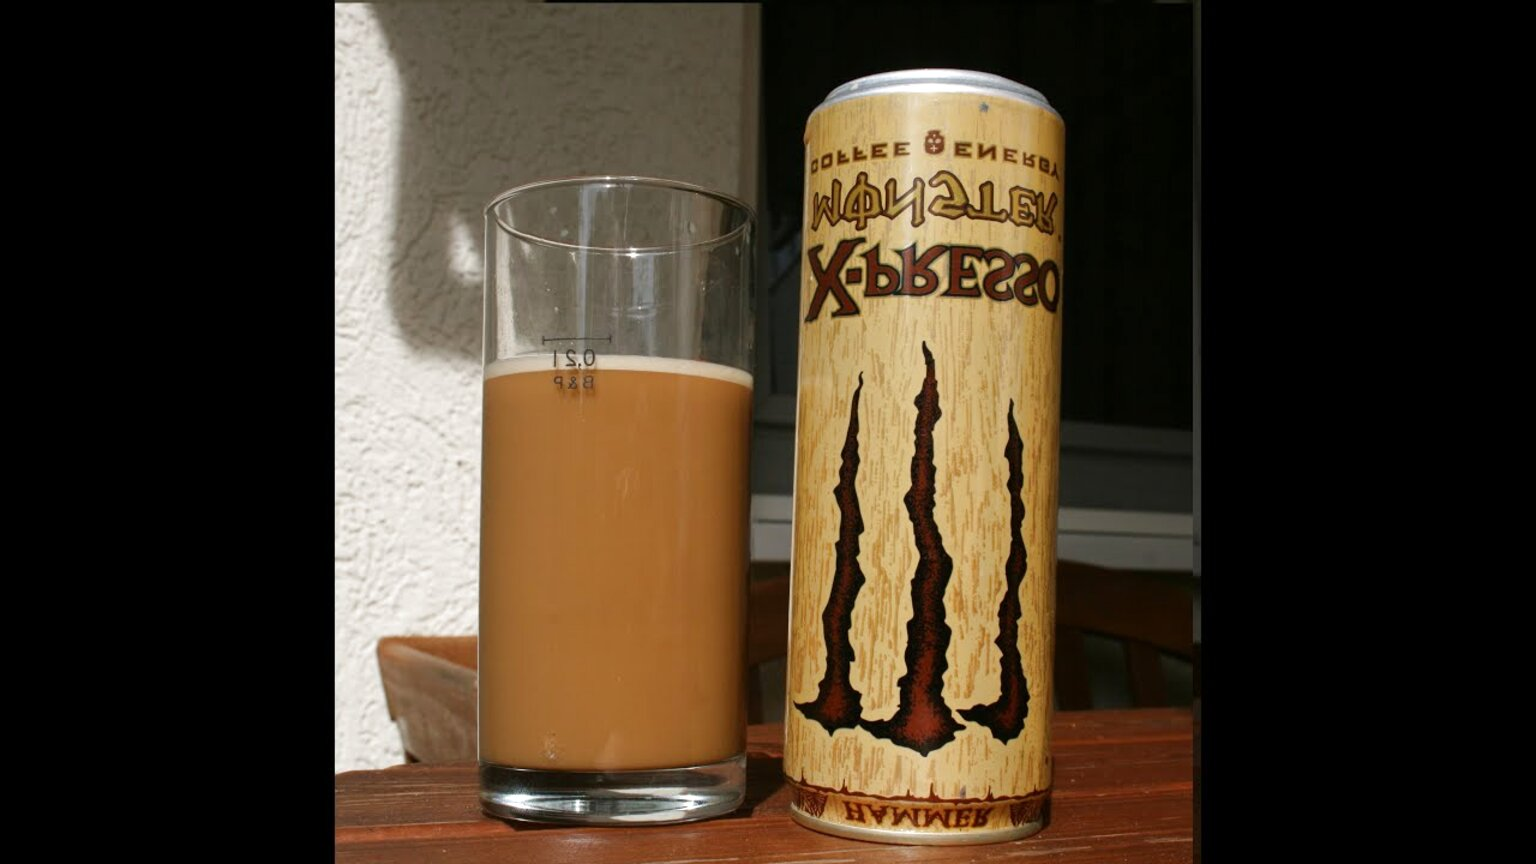 monster drink for sale